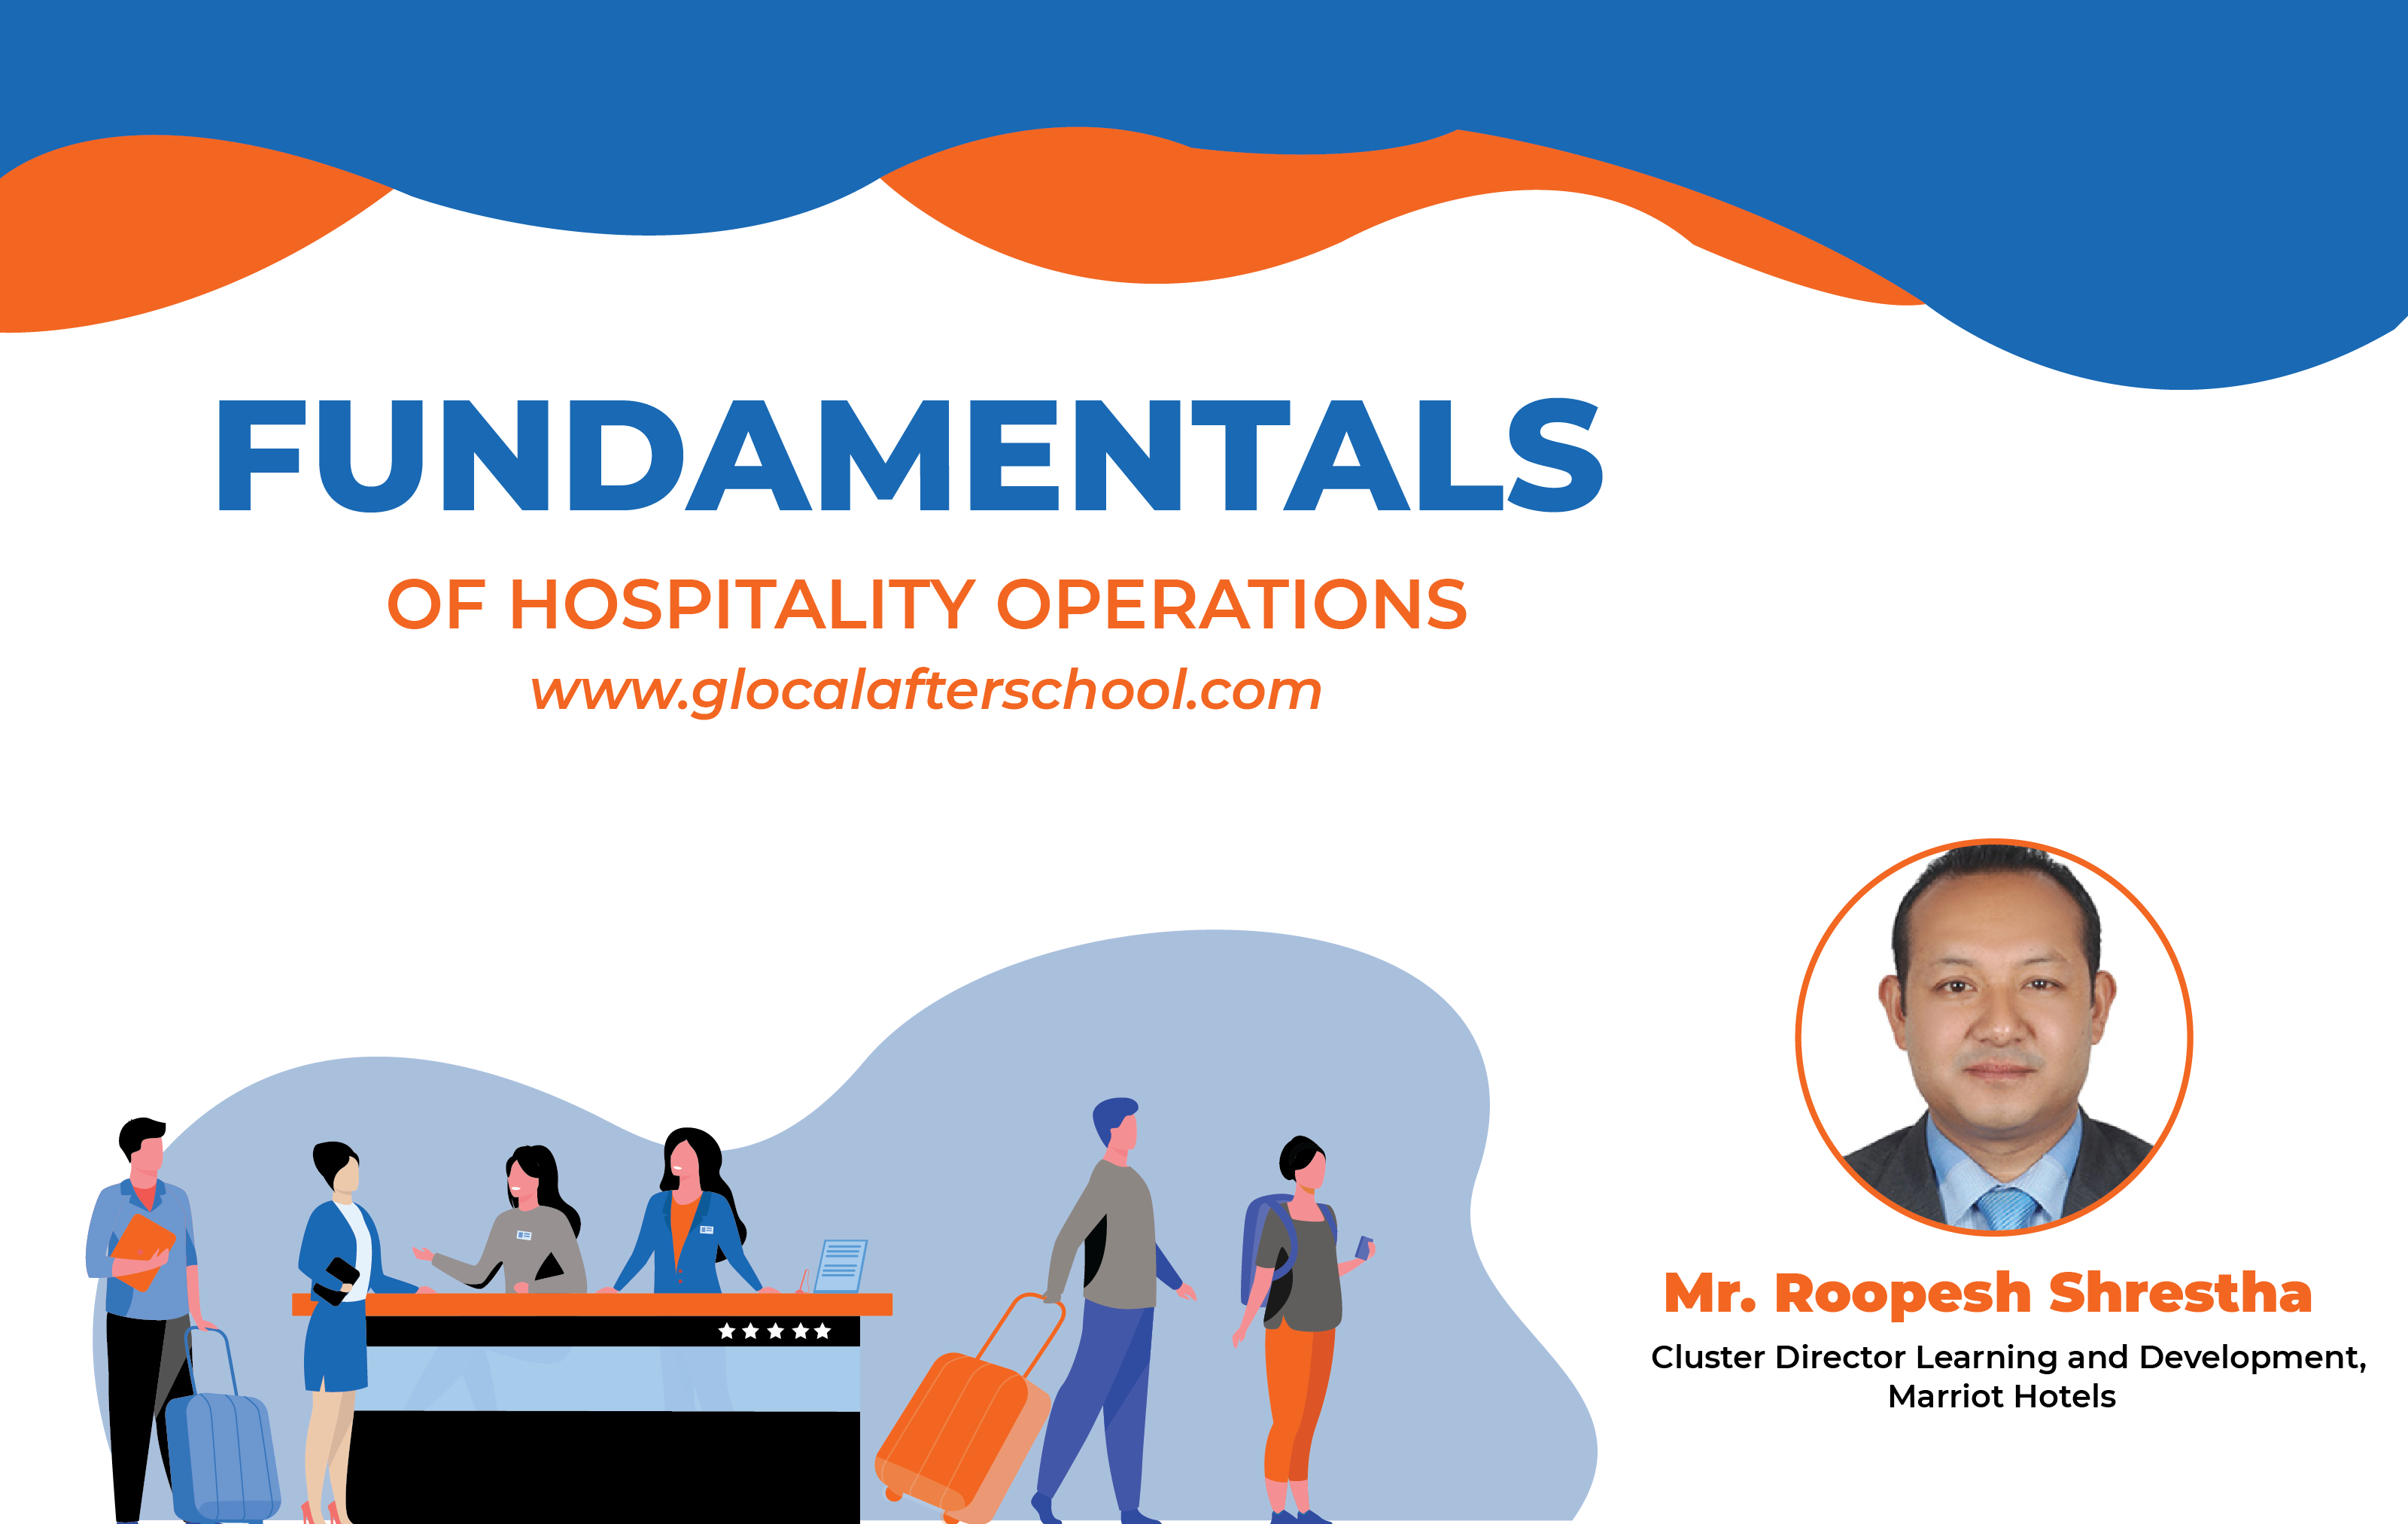 Fundamentals of Hospitality Operations